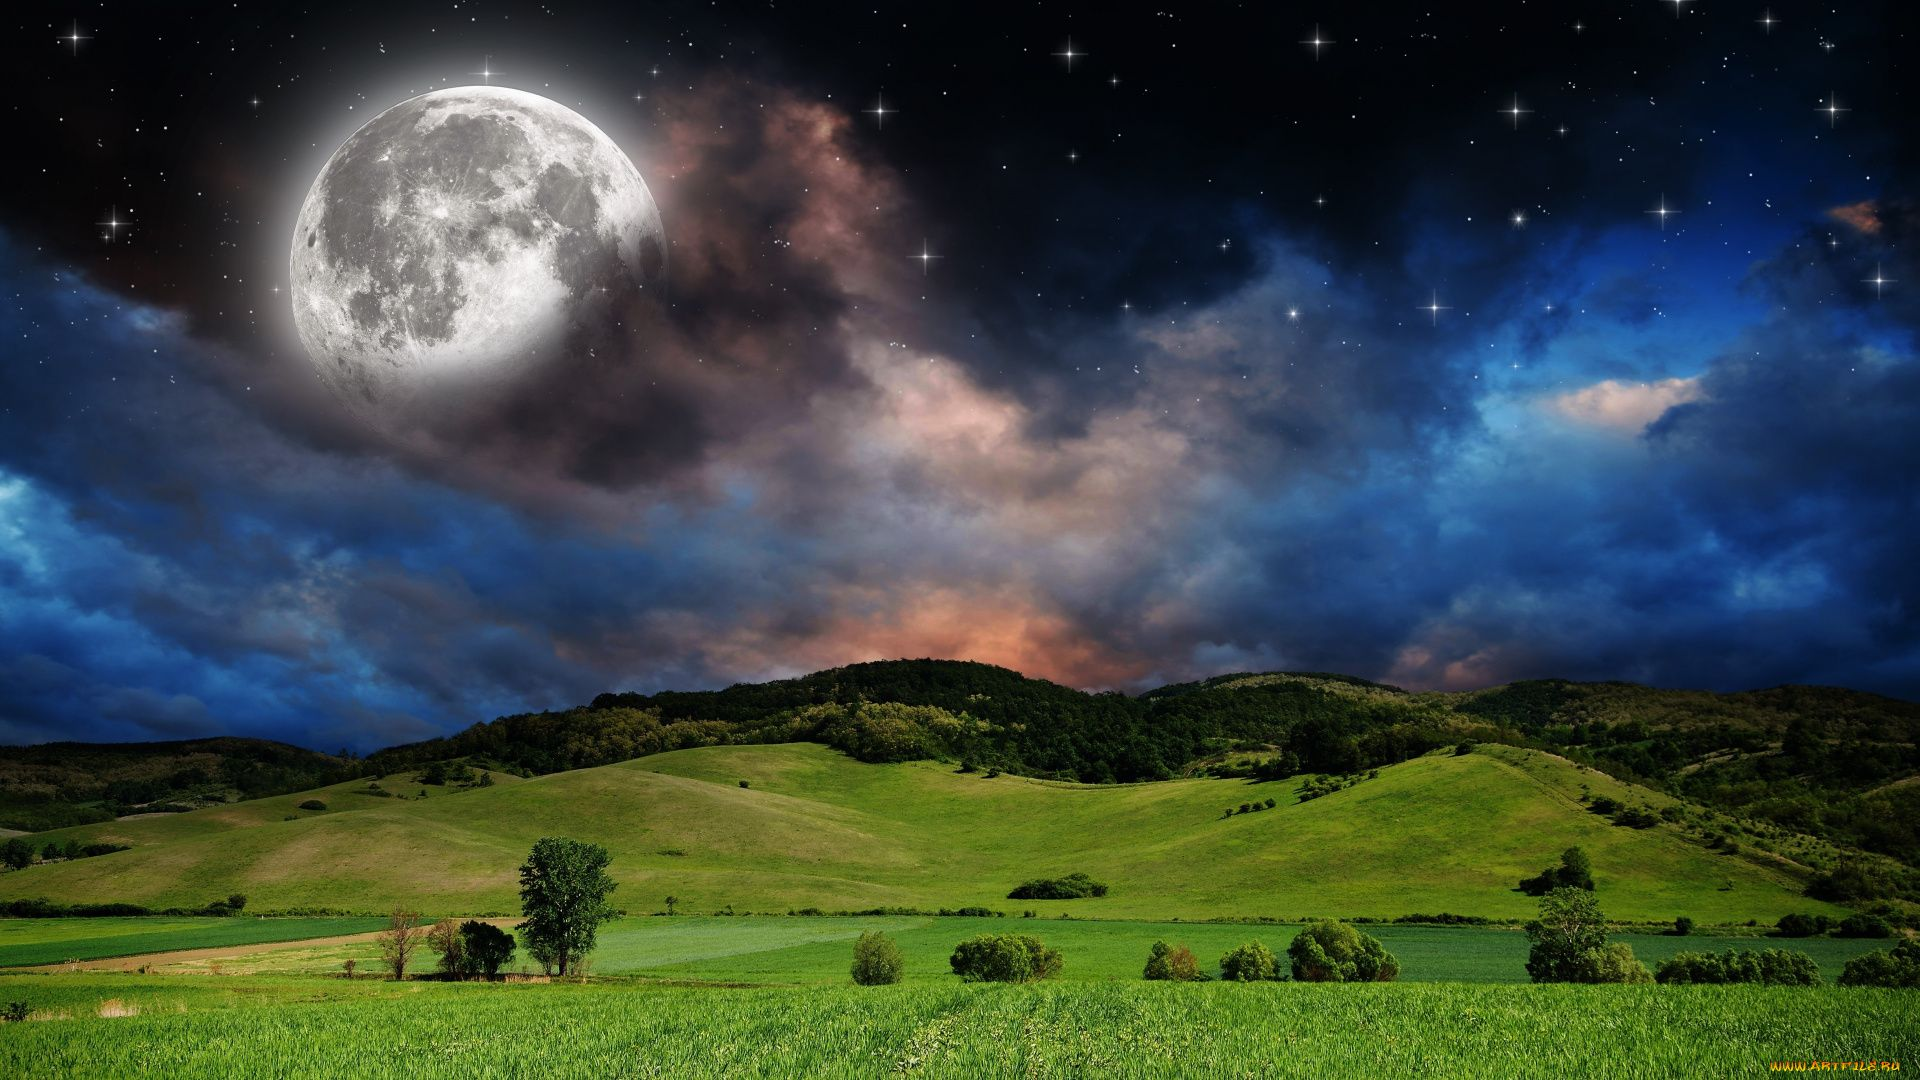 A Photo Of The Moon With A Beautiful Sky